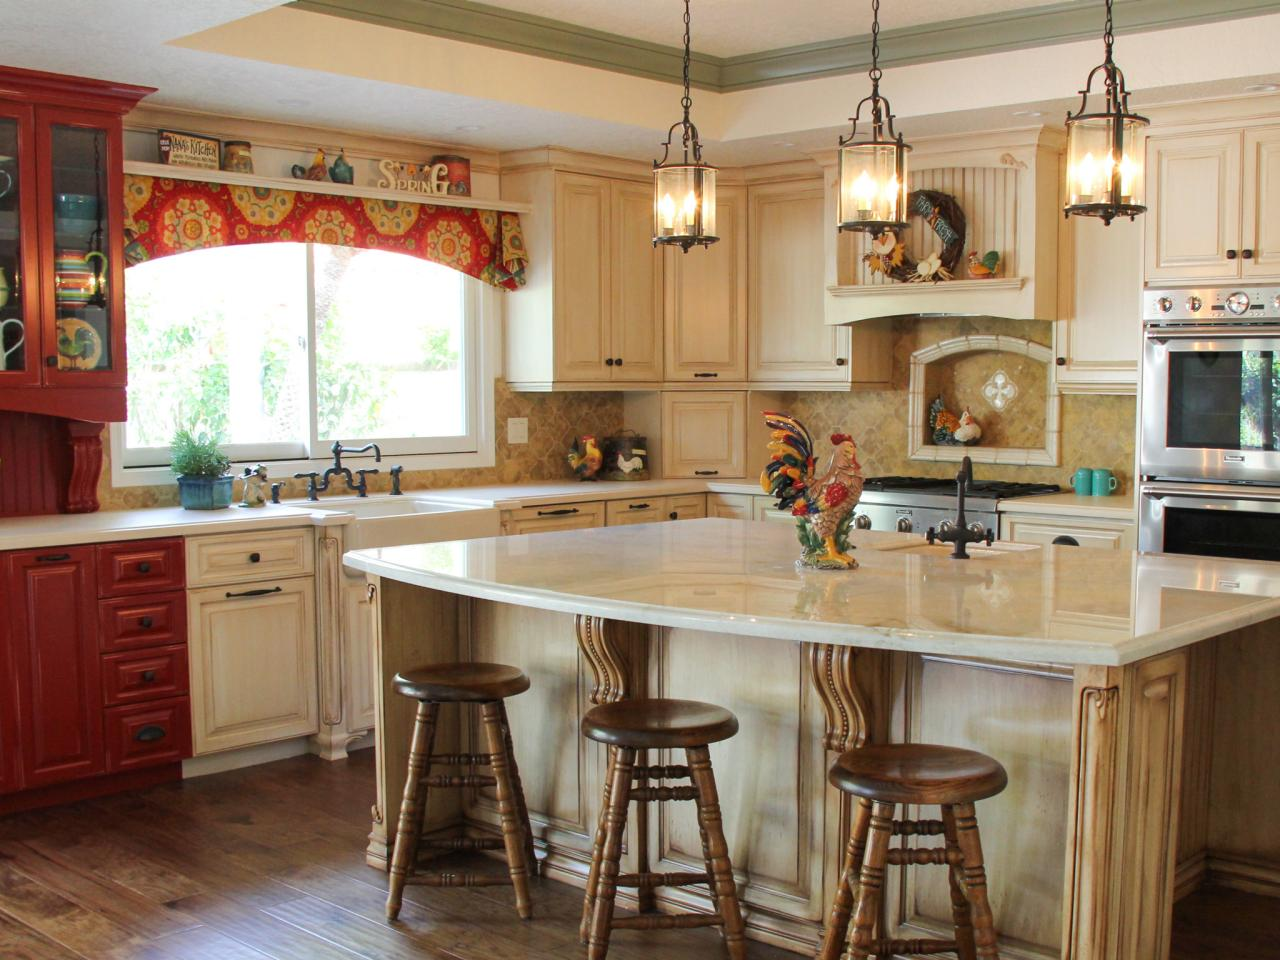 Country kitchen with red and white cabinets hgtv for Hgtv kitchens